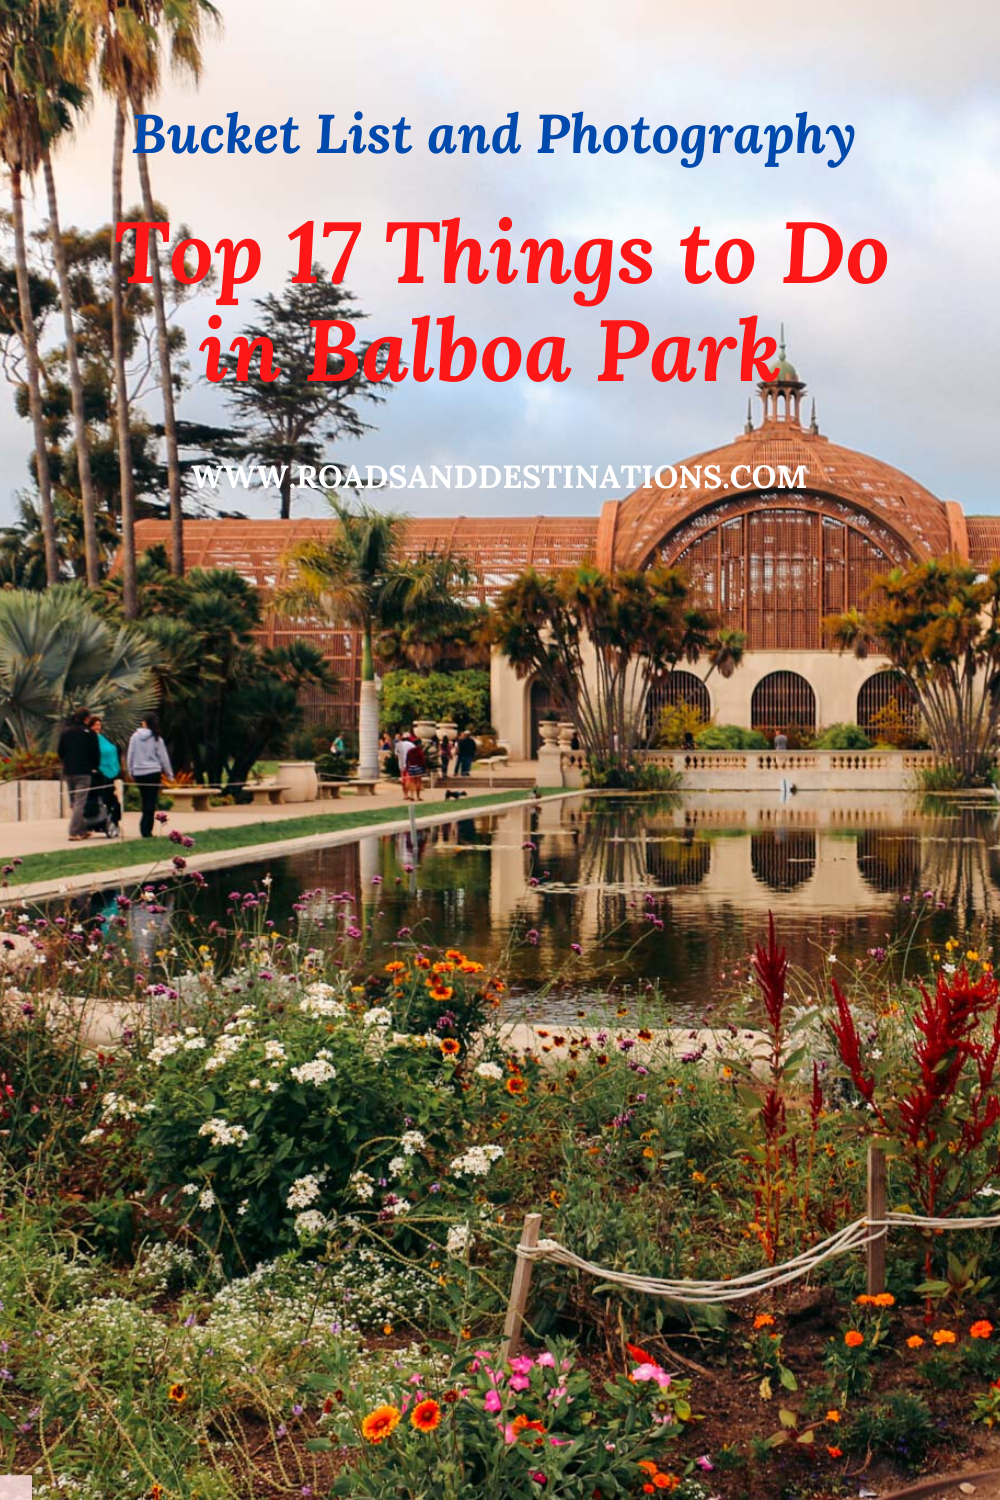 Top 17 Things to Do in Balboa Park. Bucket List and Photography